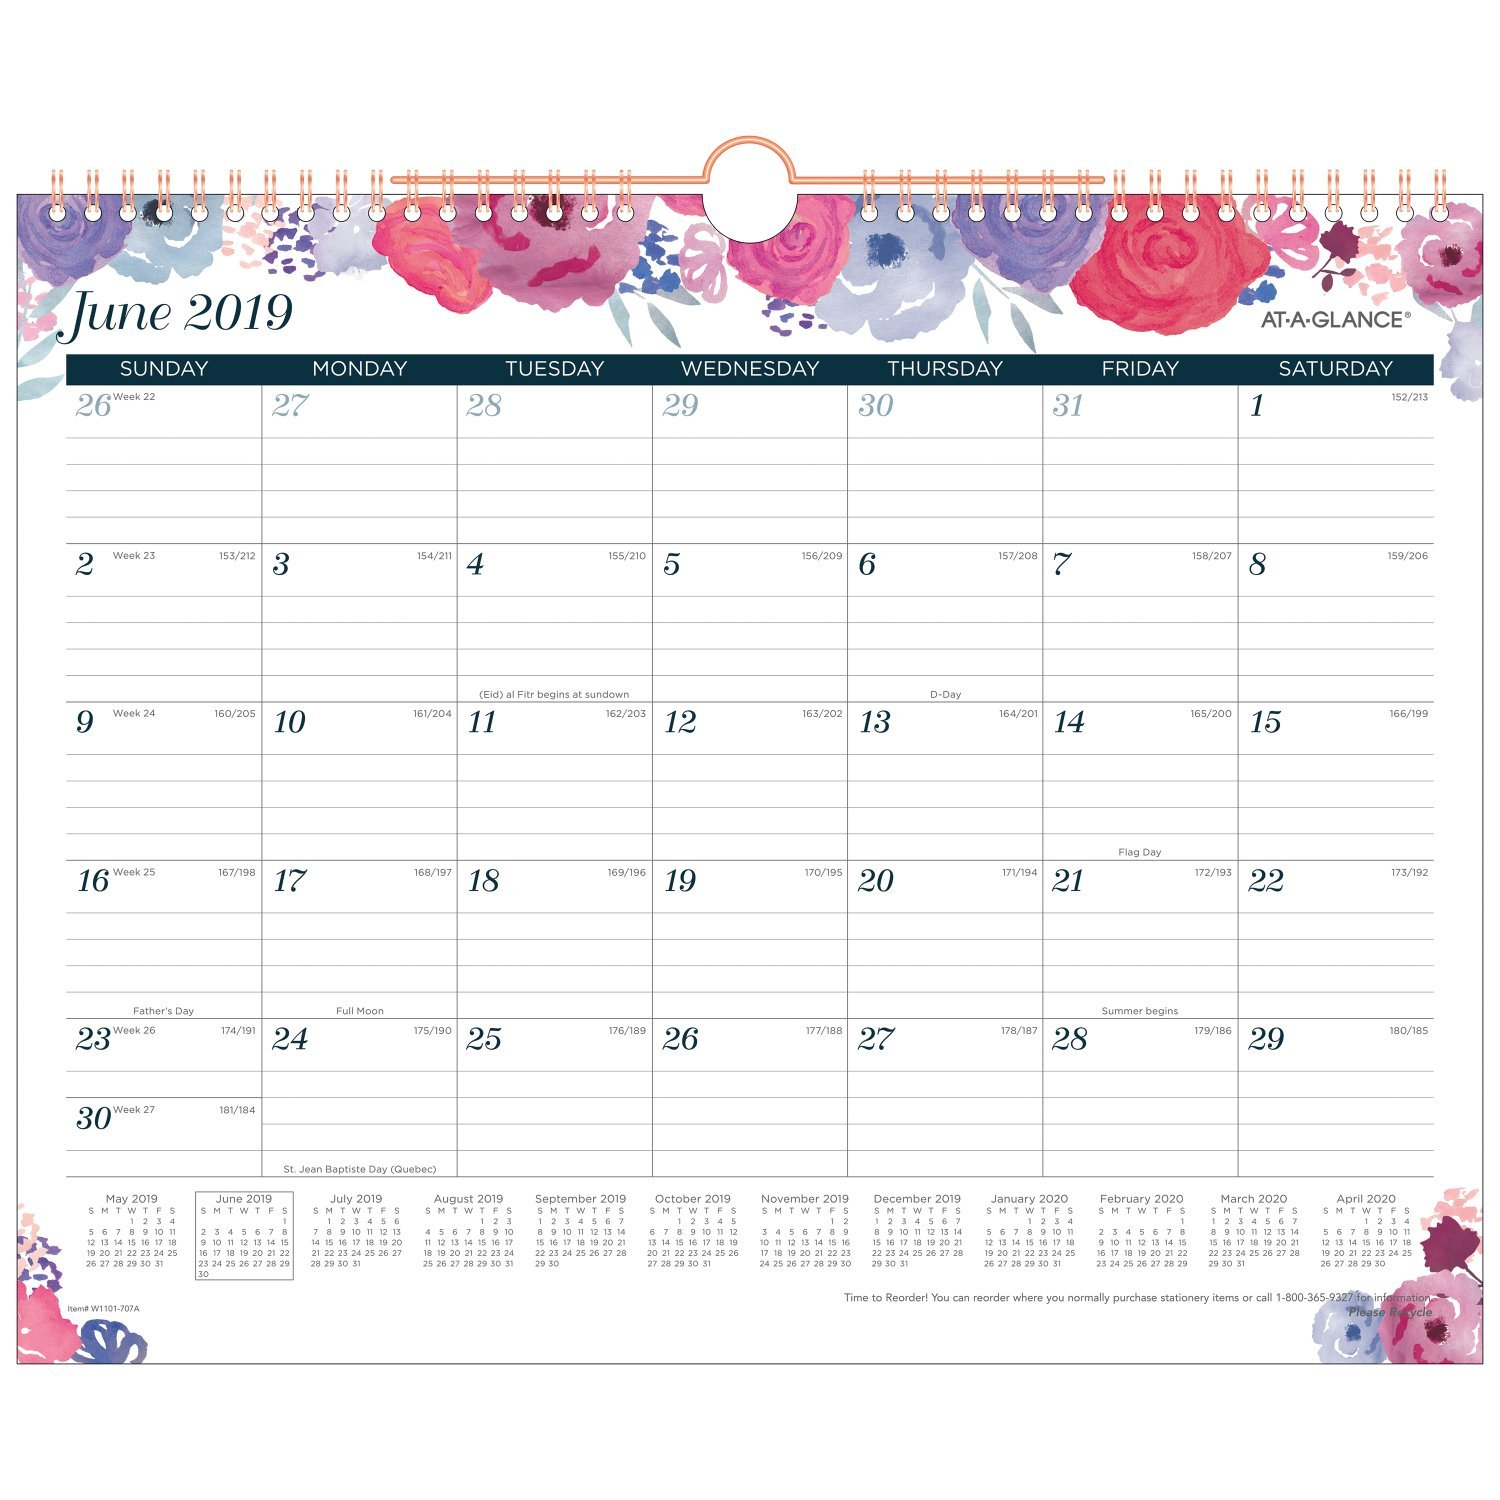 AT-A-GLANCE 2018-2019 Academic Year Wall Calendar, Medium, 14-7/8 x 11-7/8, Wirebound, Midnight Rose (W1101-707A)